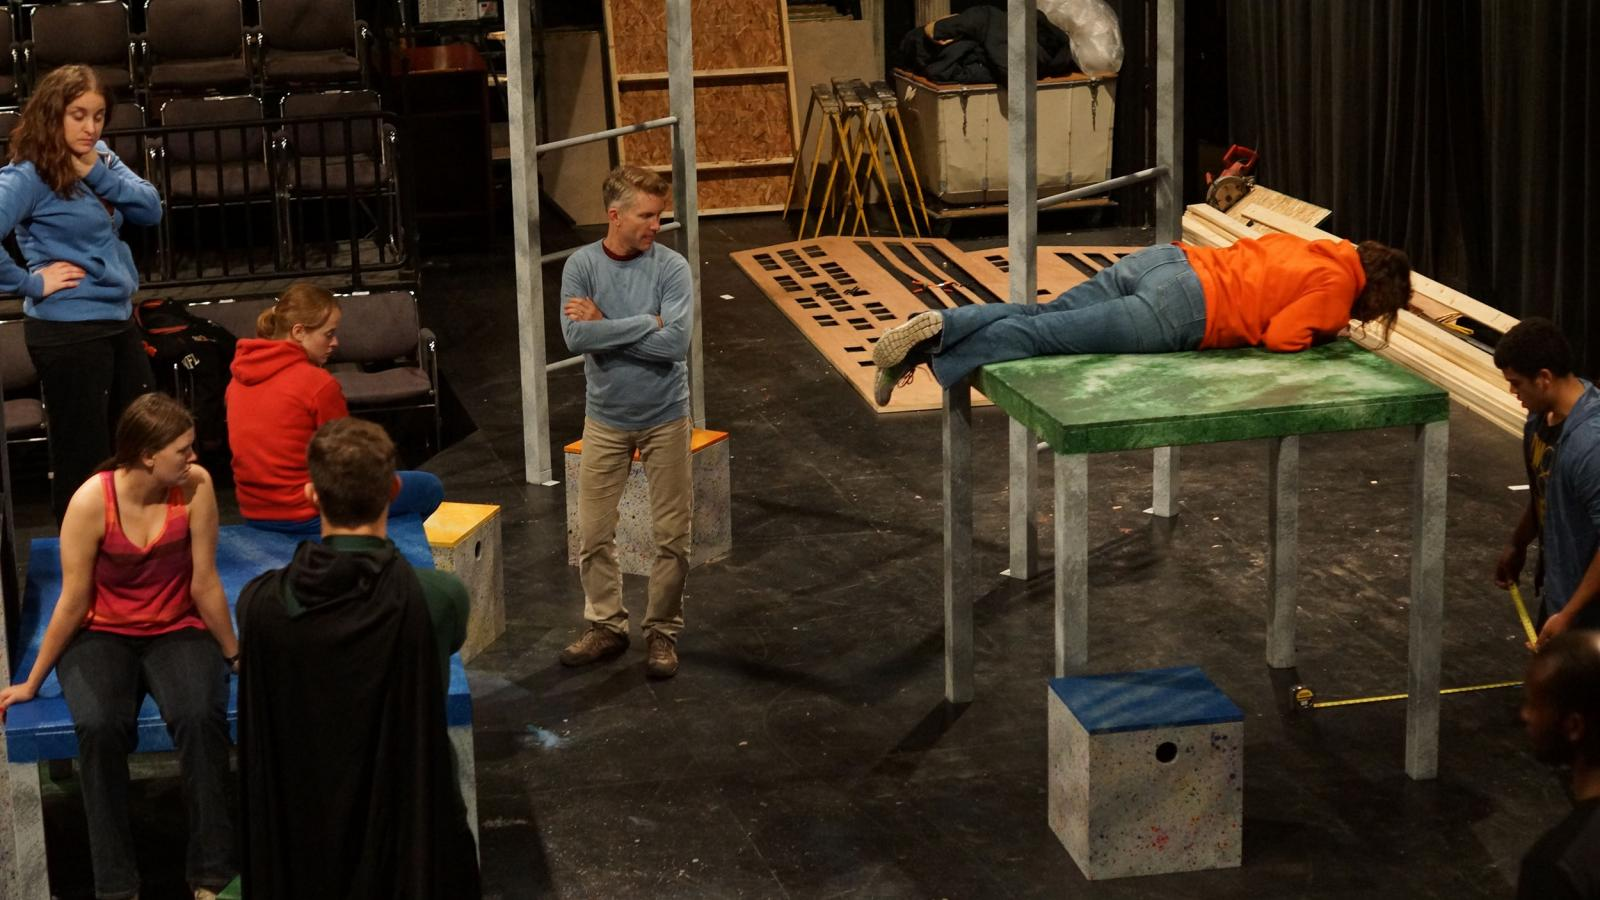 Ohio State graduate students rehearse their production about a young girl with autism.